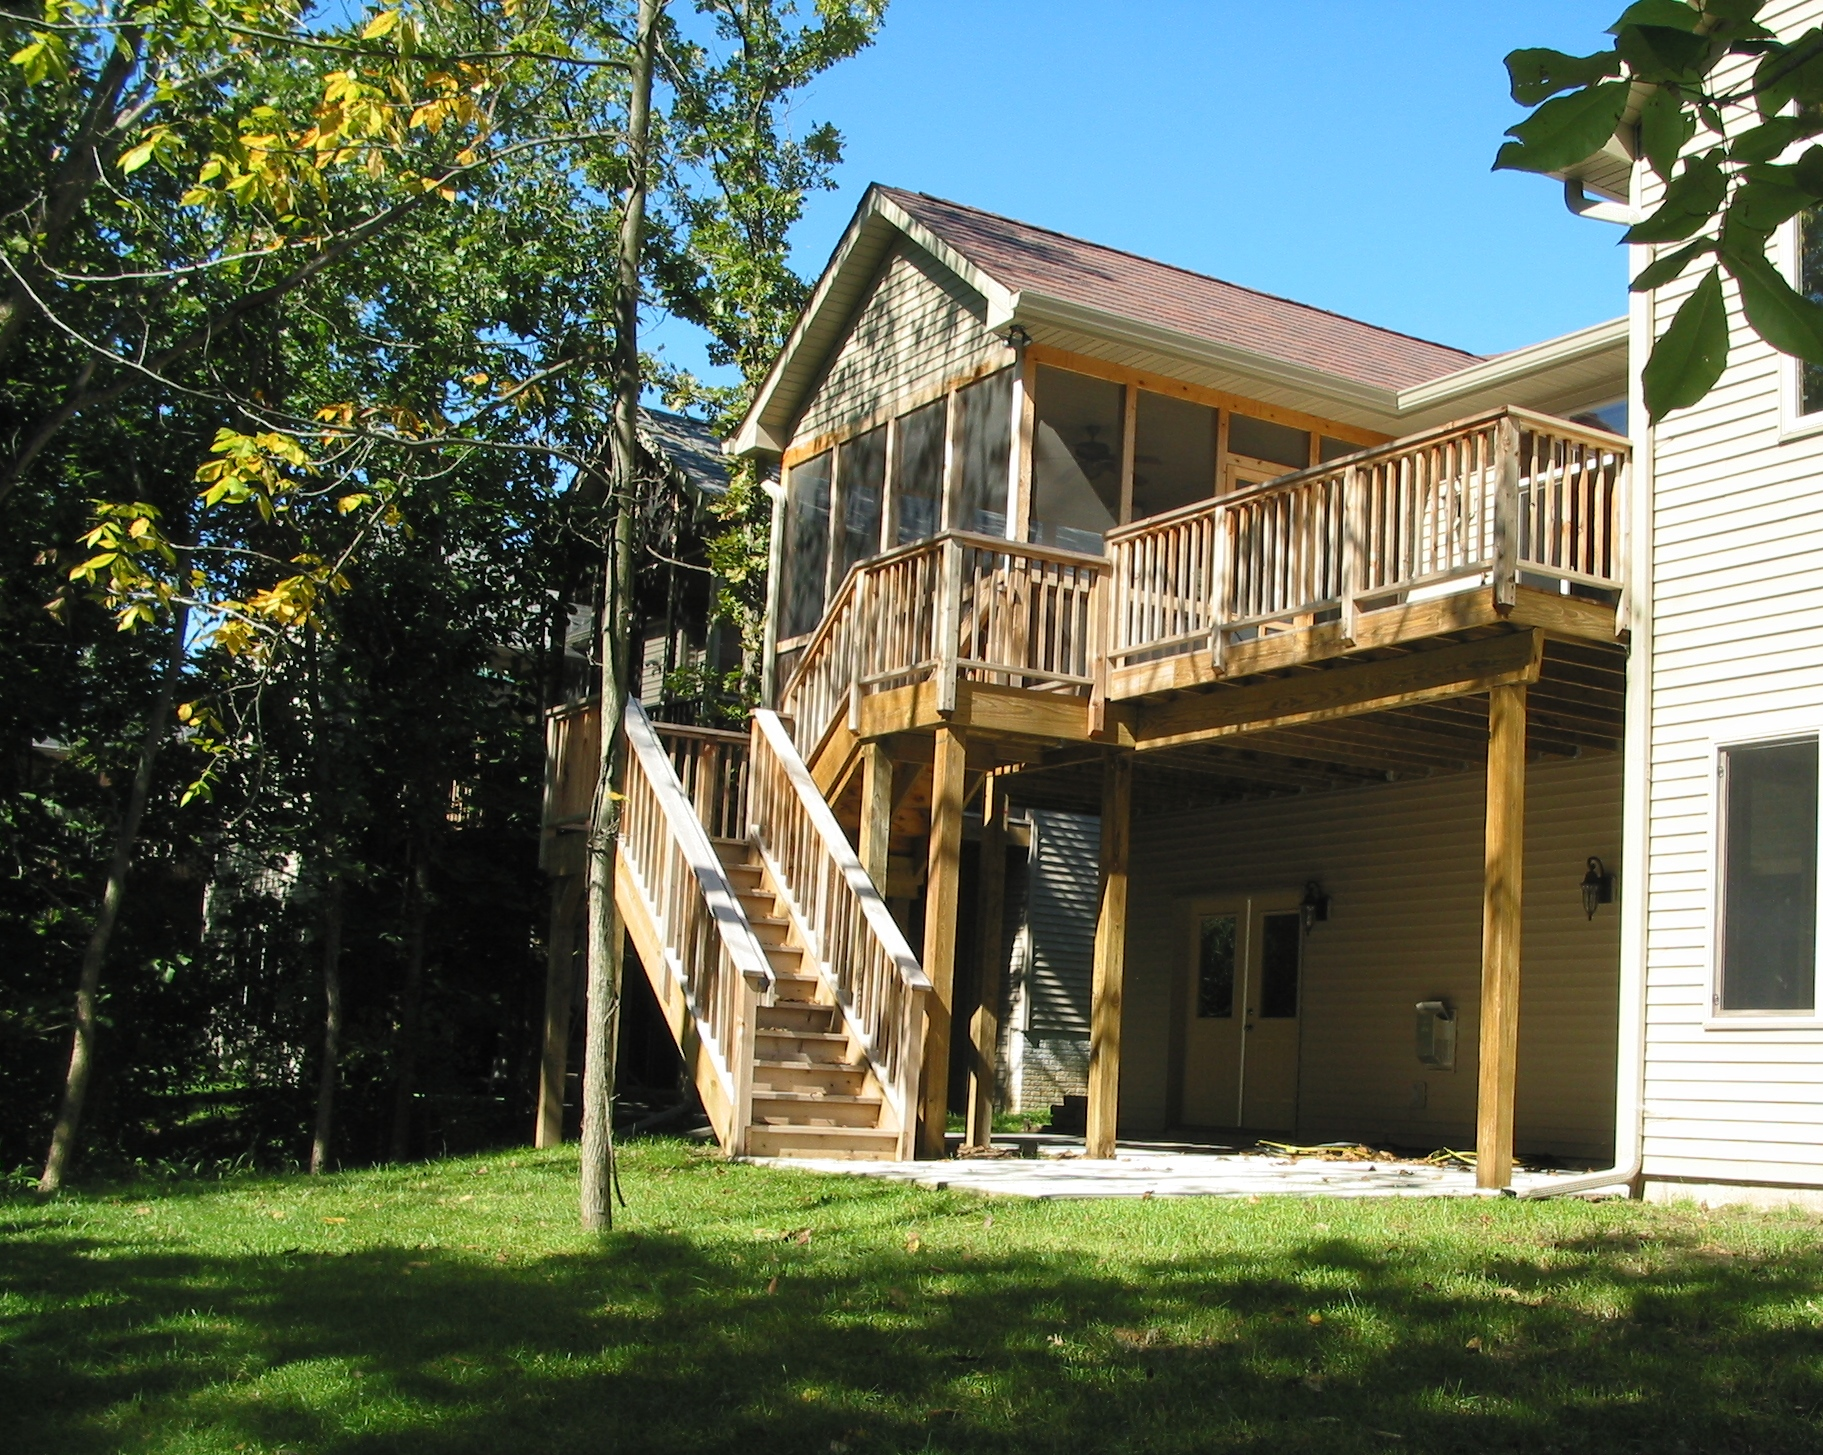 16 Screen Porch, Deck and Stairs.JPG